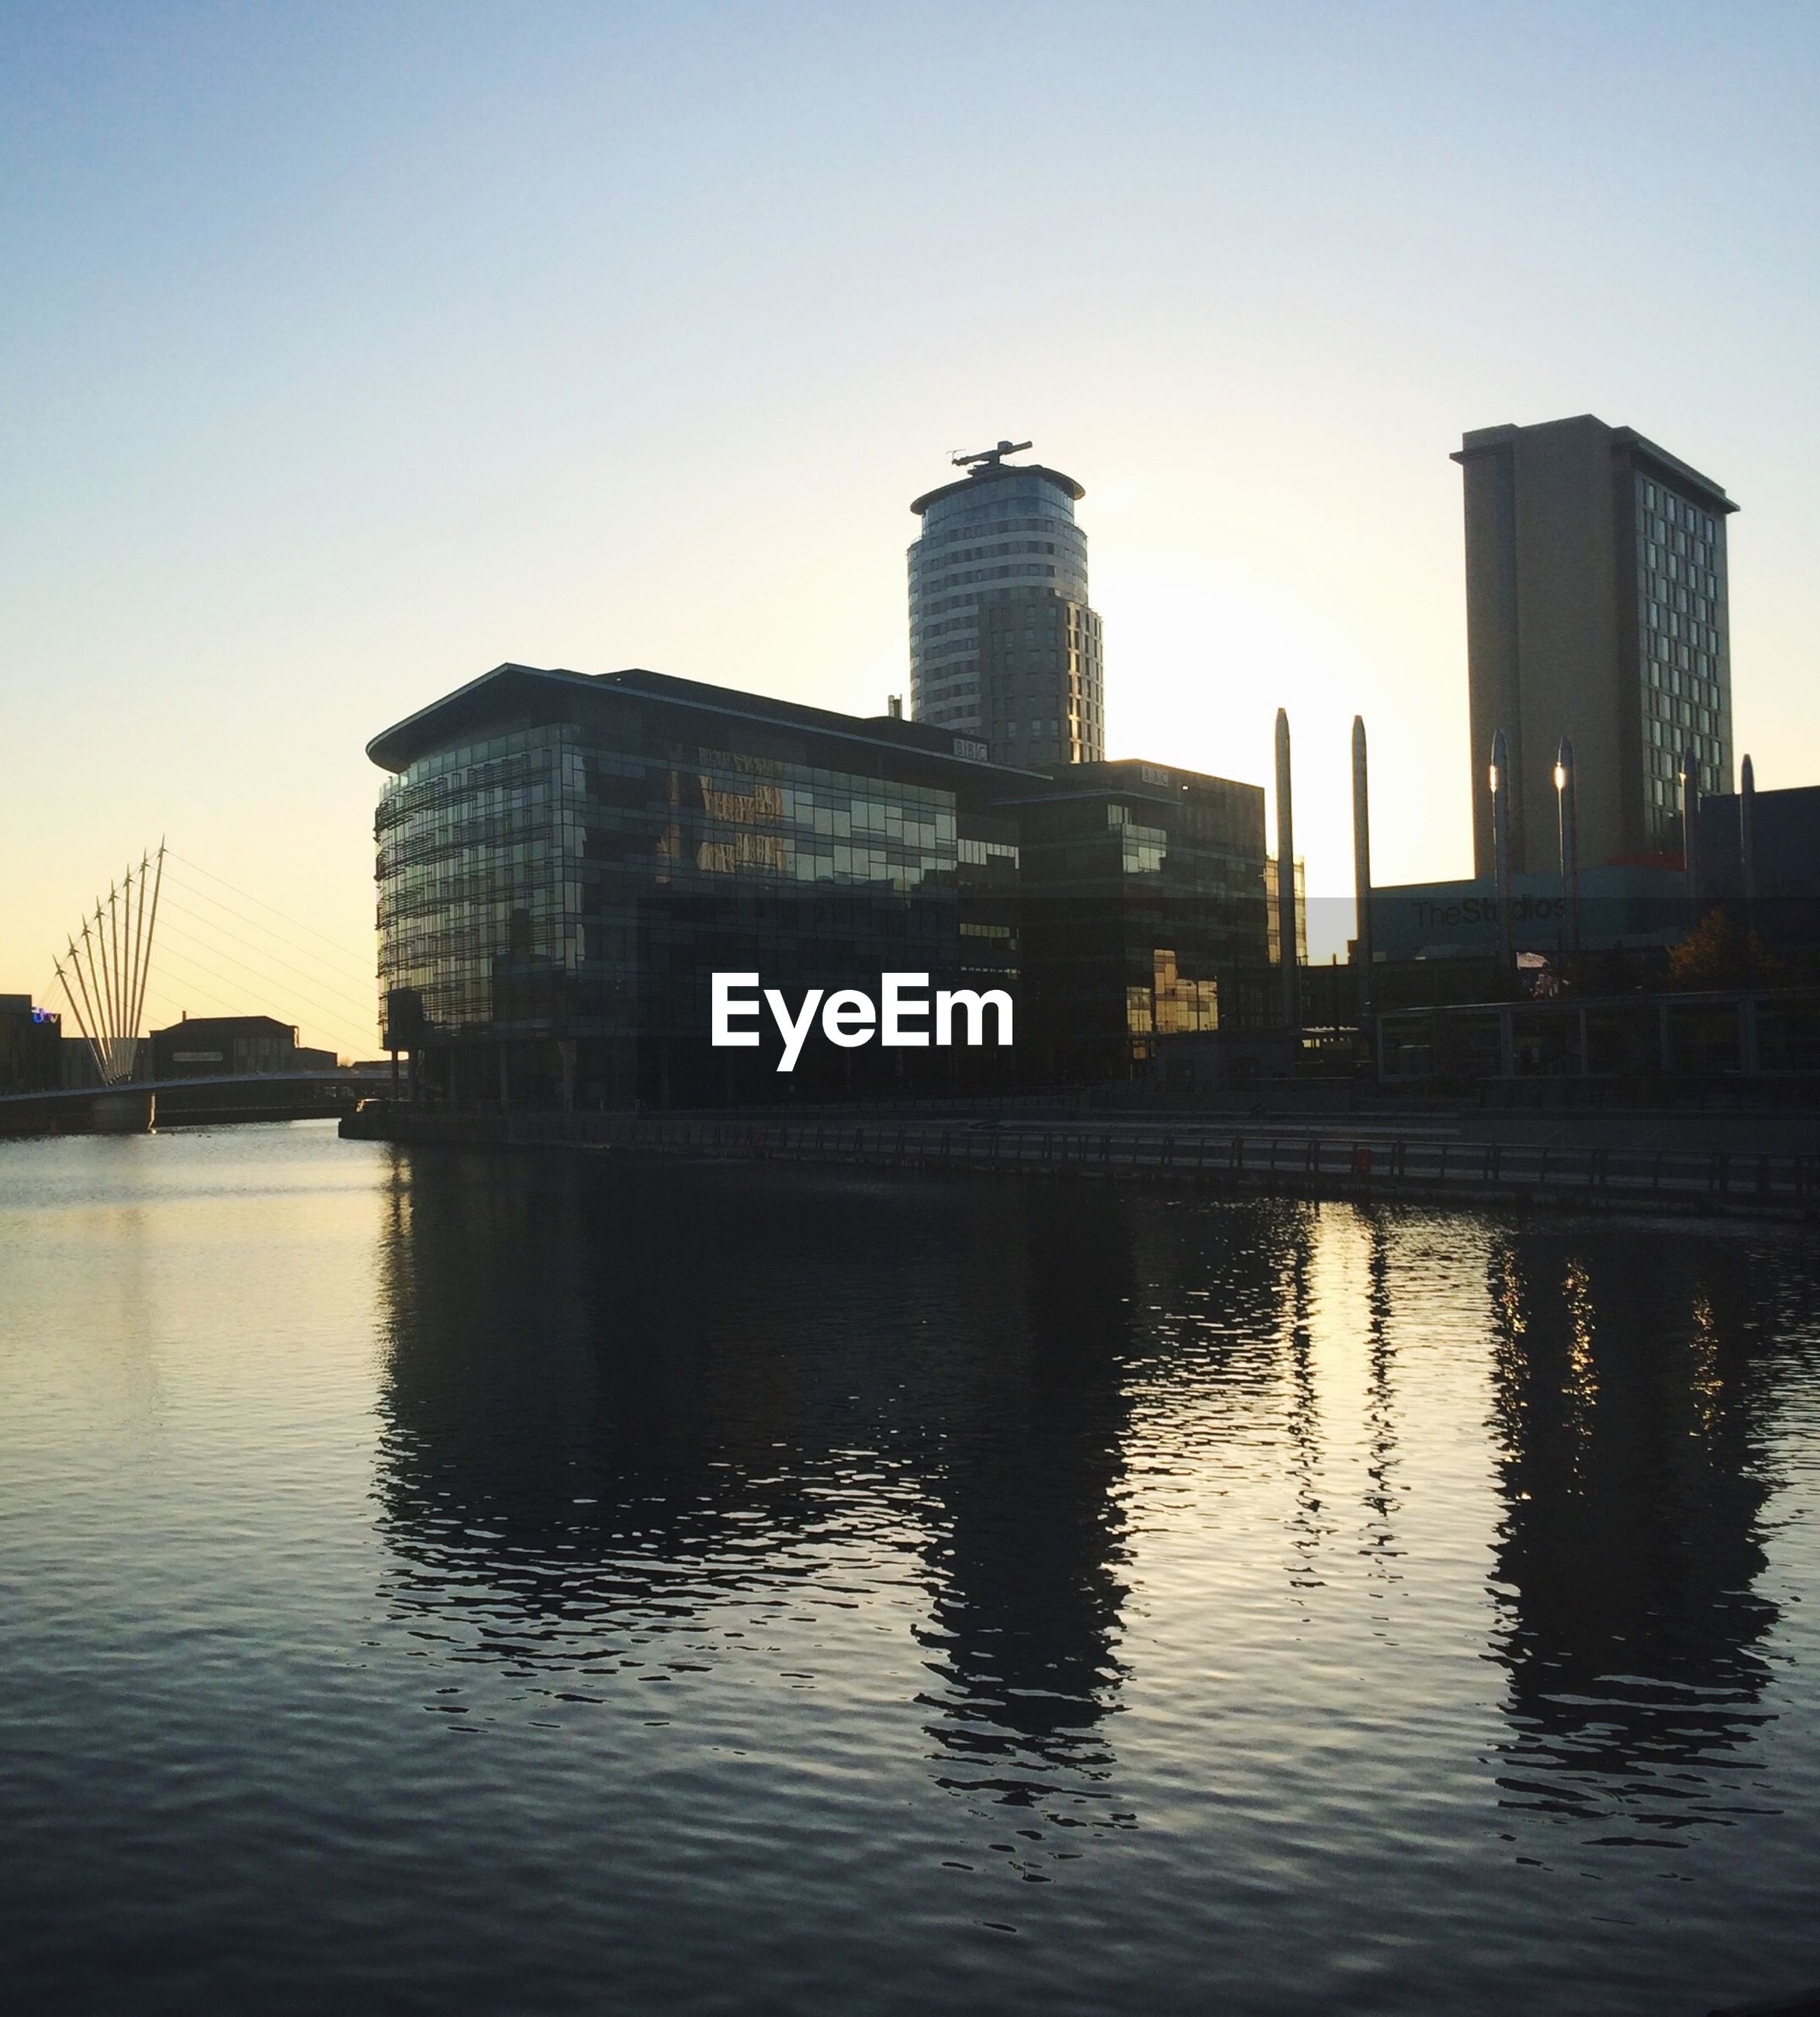 River by modern buildings against clear sky at sunset